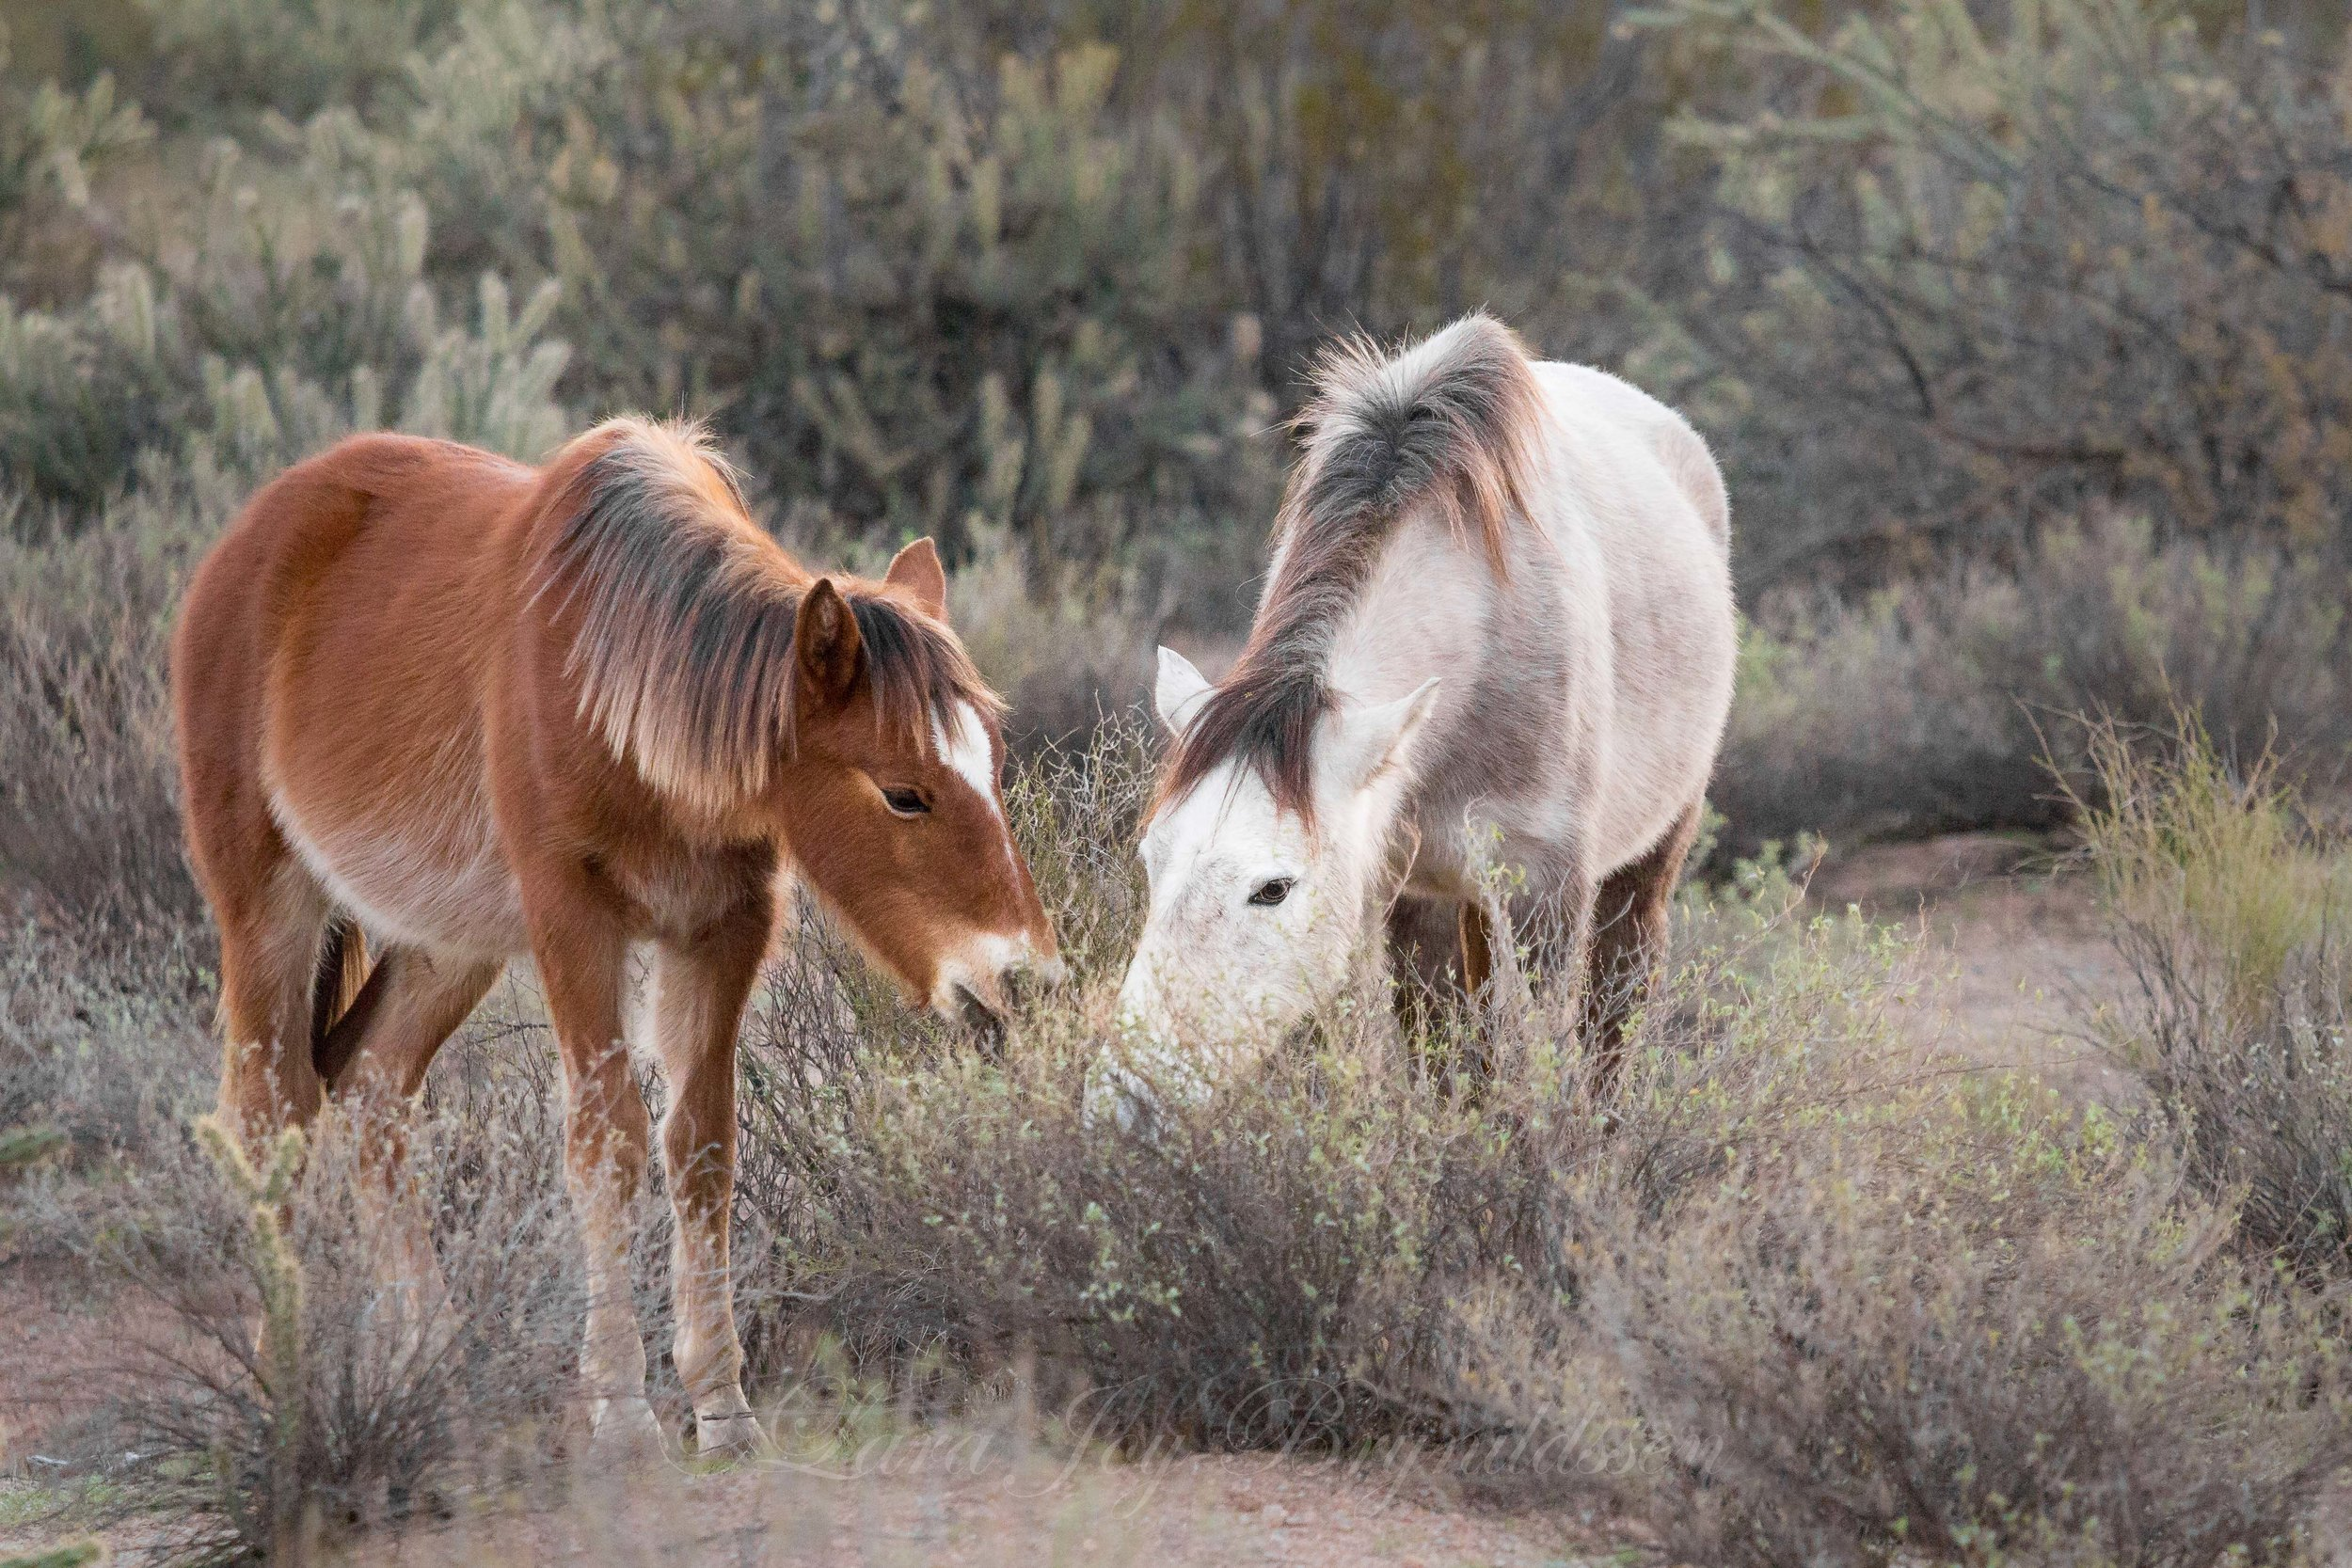 Salt River wild horses, Tonto National Forest, Arizona